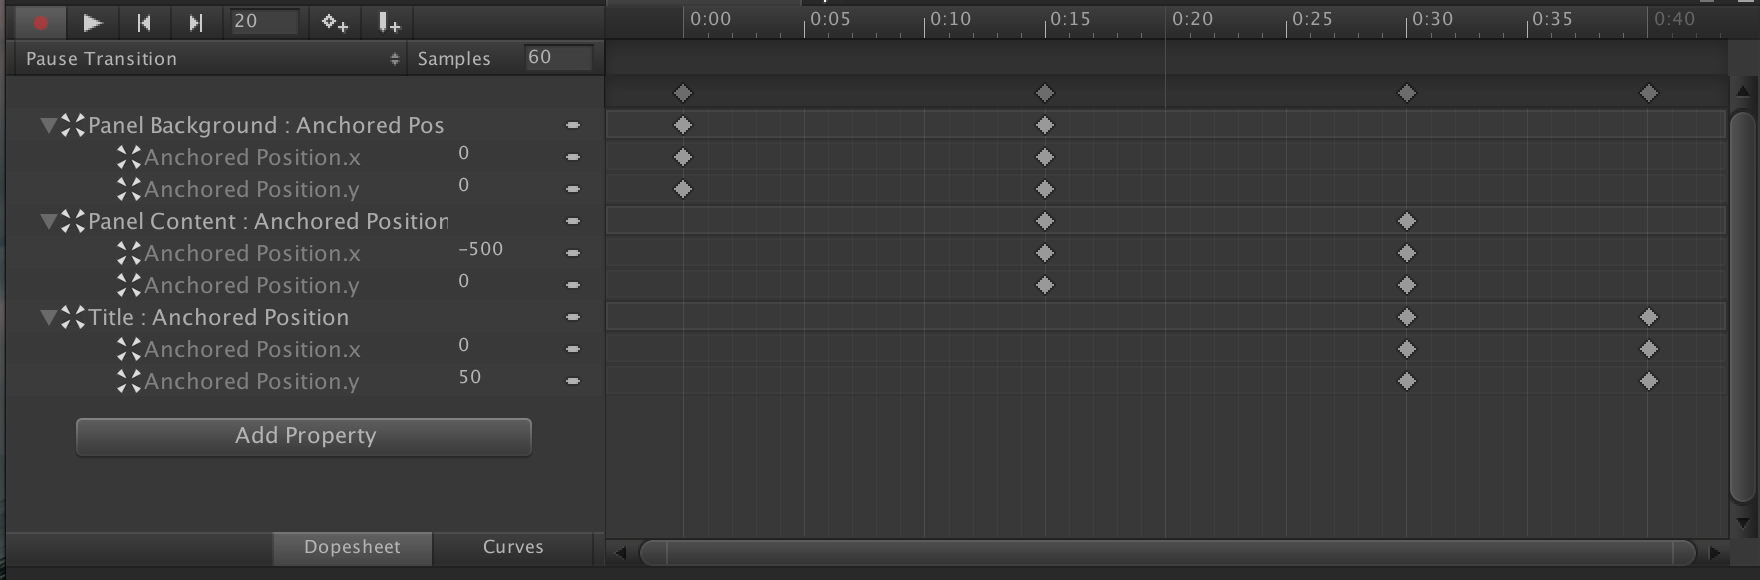 Unity3D Animated Pause Menu, Part 2: Animating the UI elements